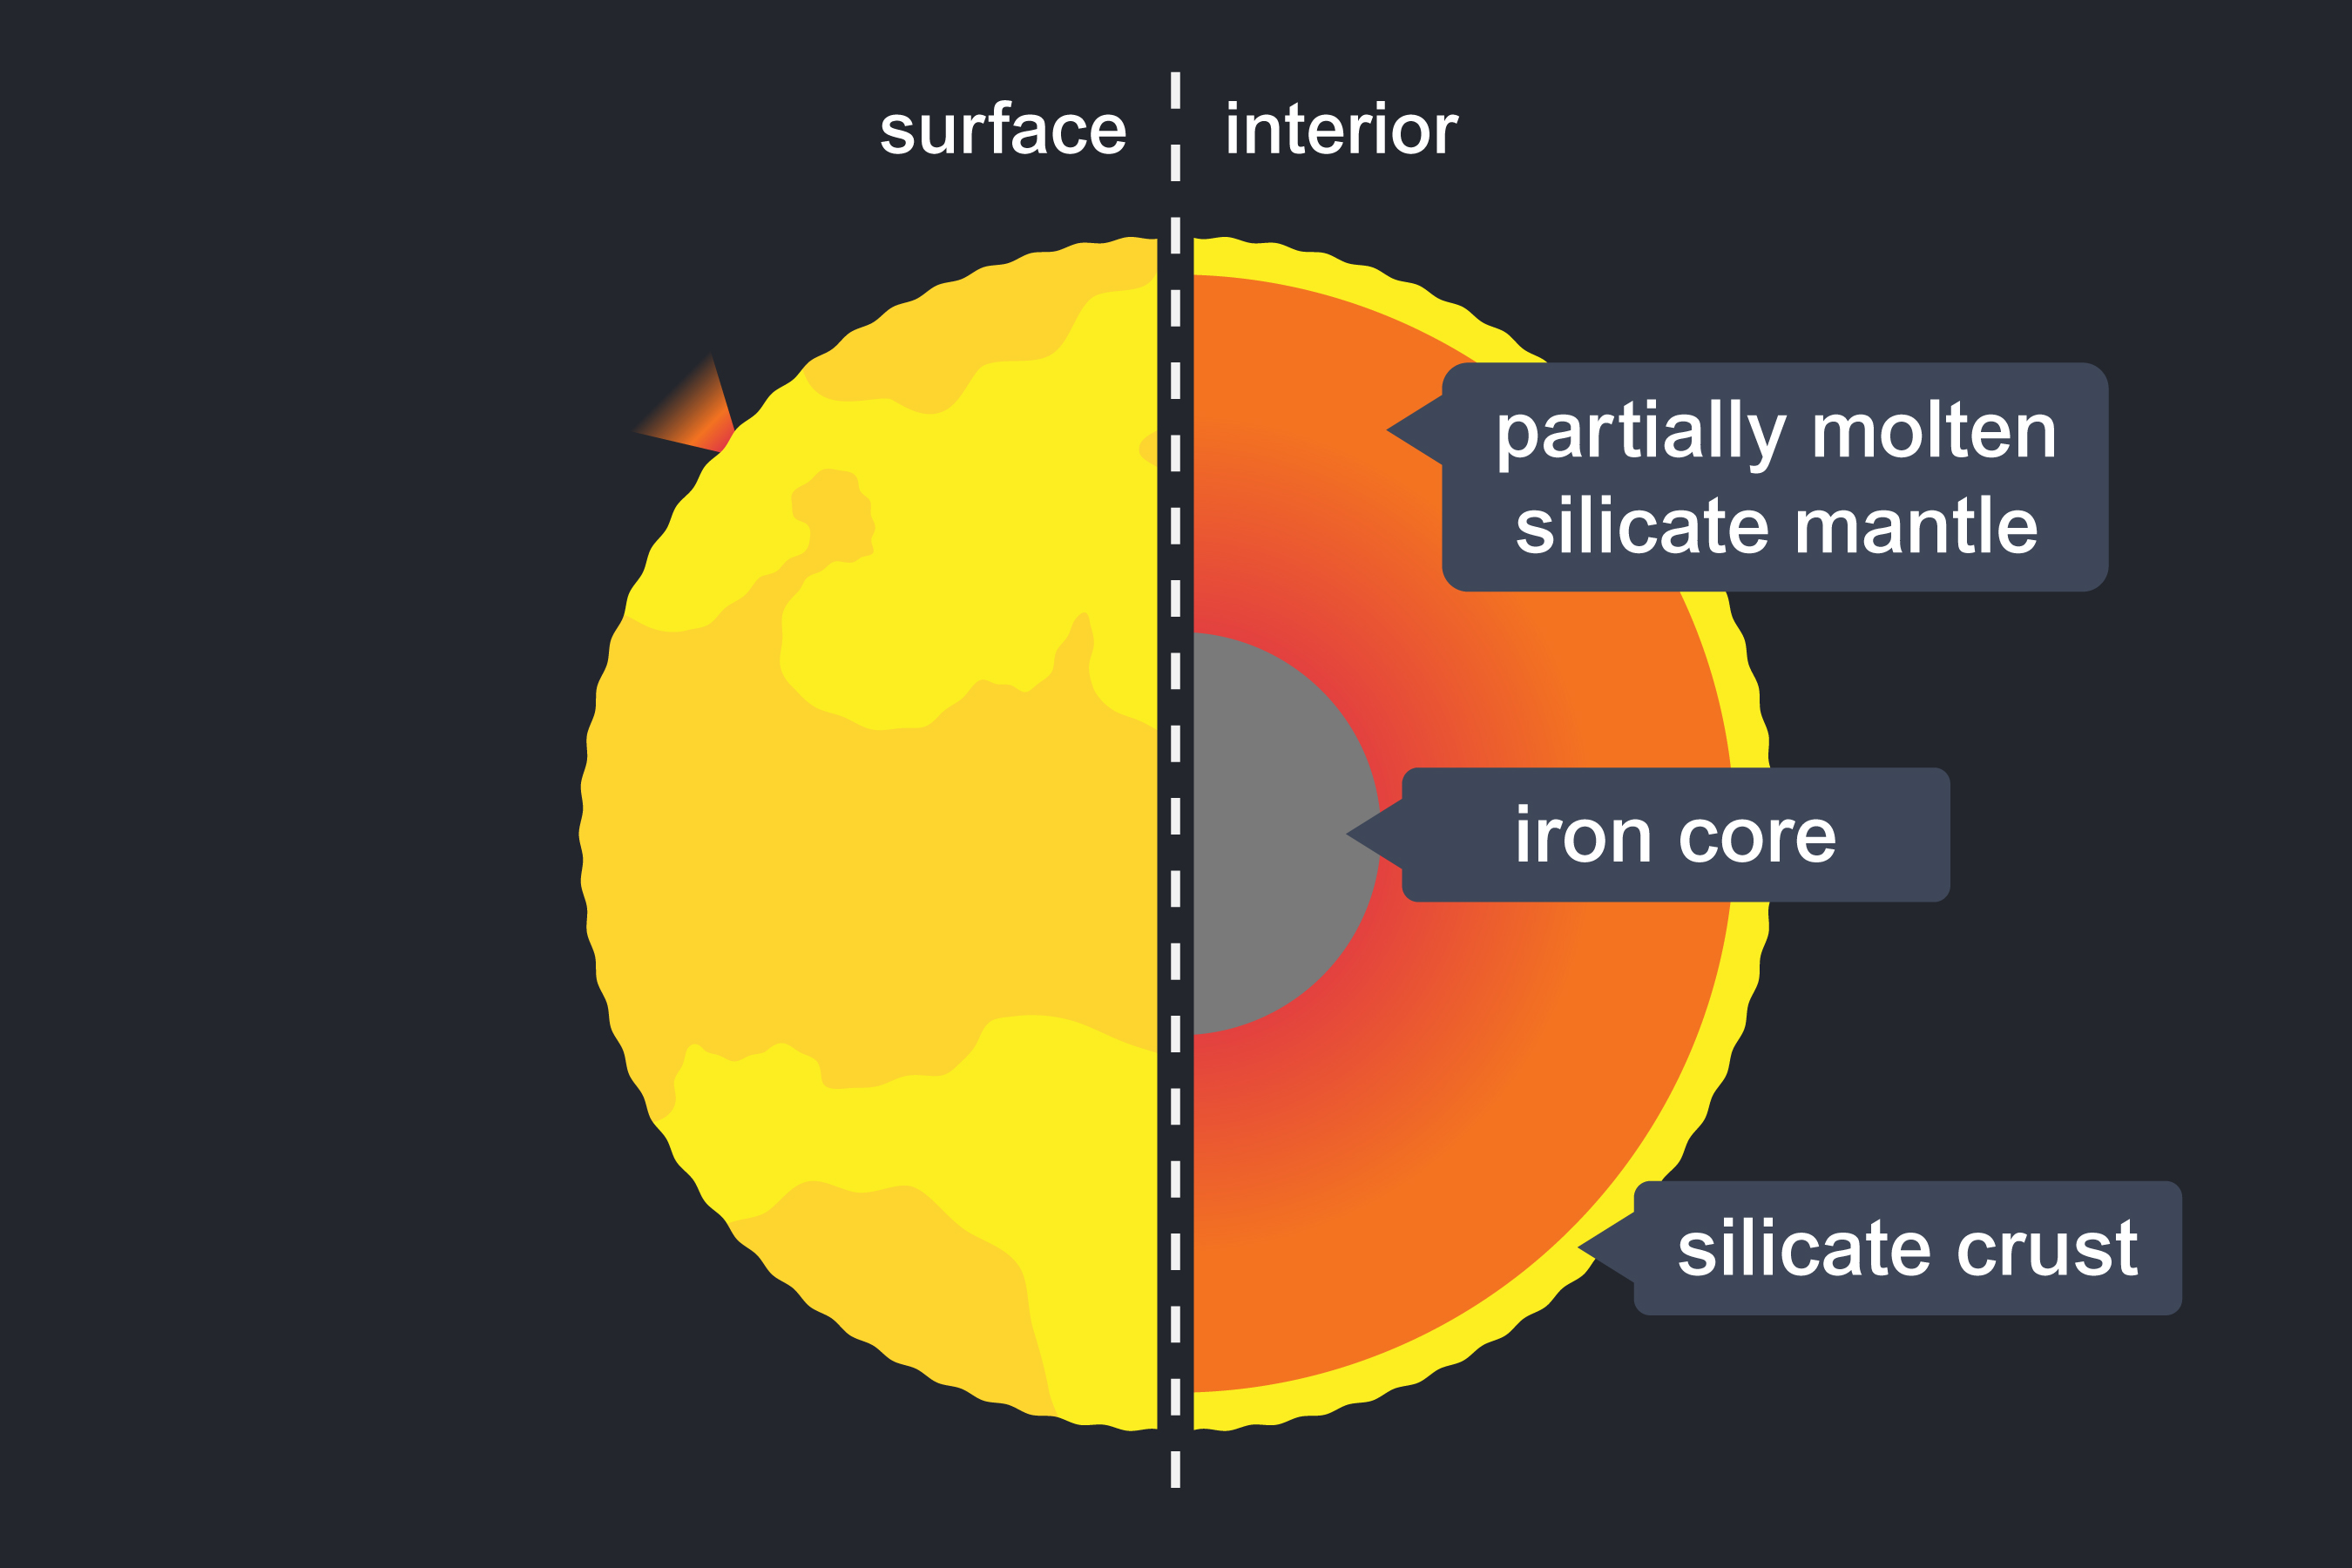 A fully labelled cross section of the interior of Io. The left side shows an illustrated surface of Io. The right side shows a labelled illustrated interior of Io. The labels show (from centre to surface): iron core, partially molten silicate mantle, silicate crust.